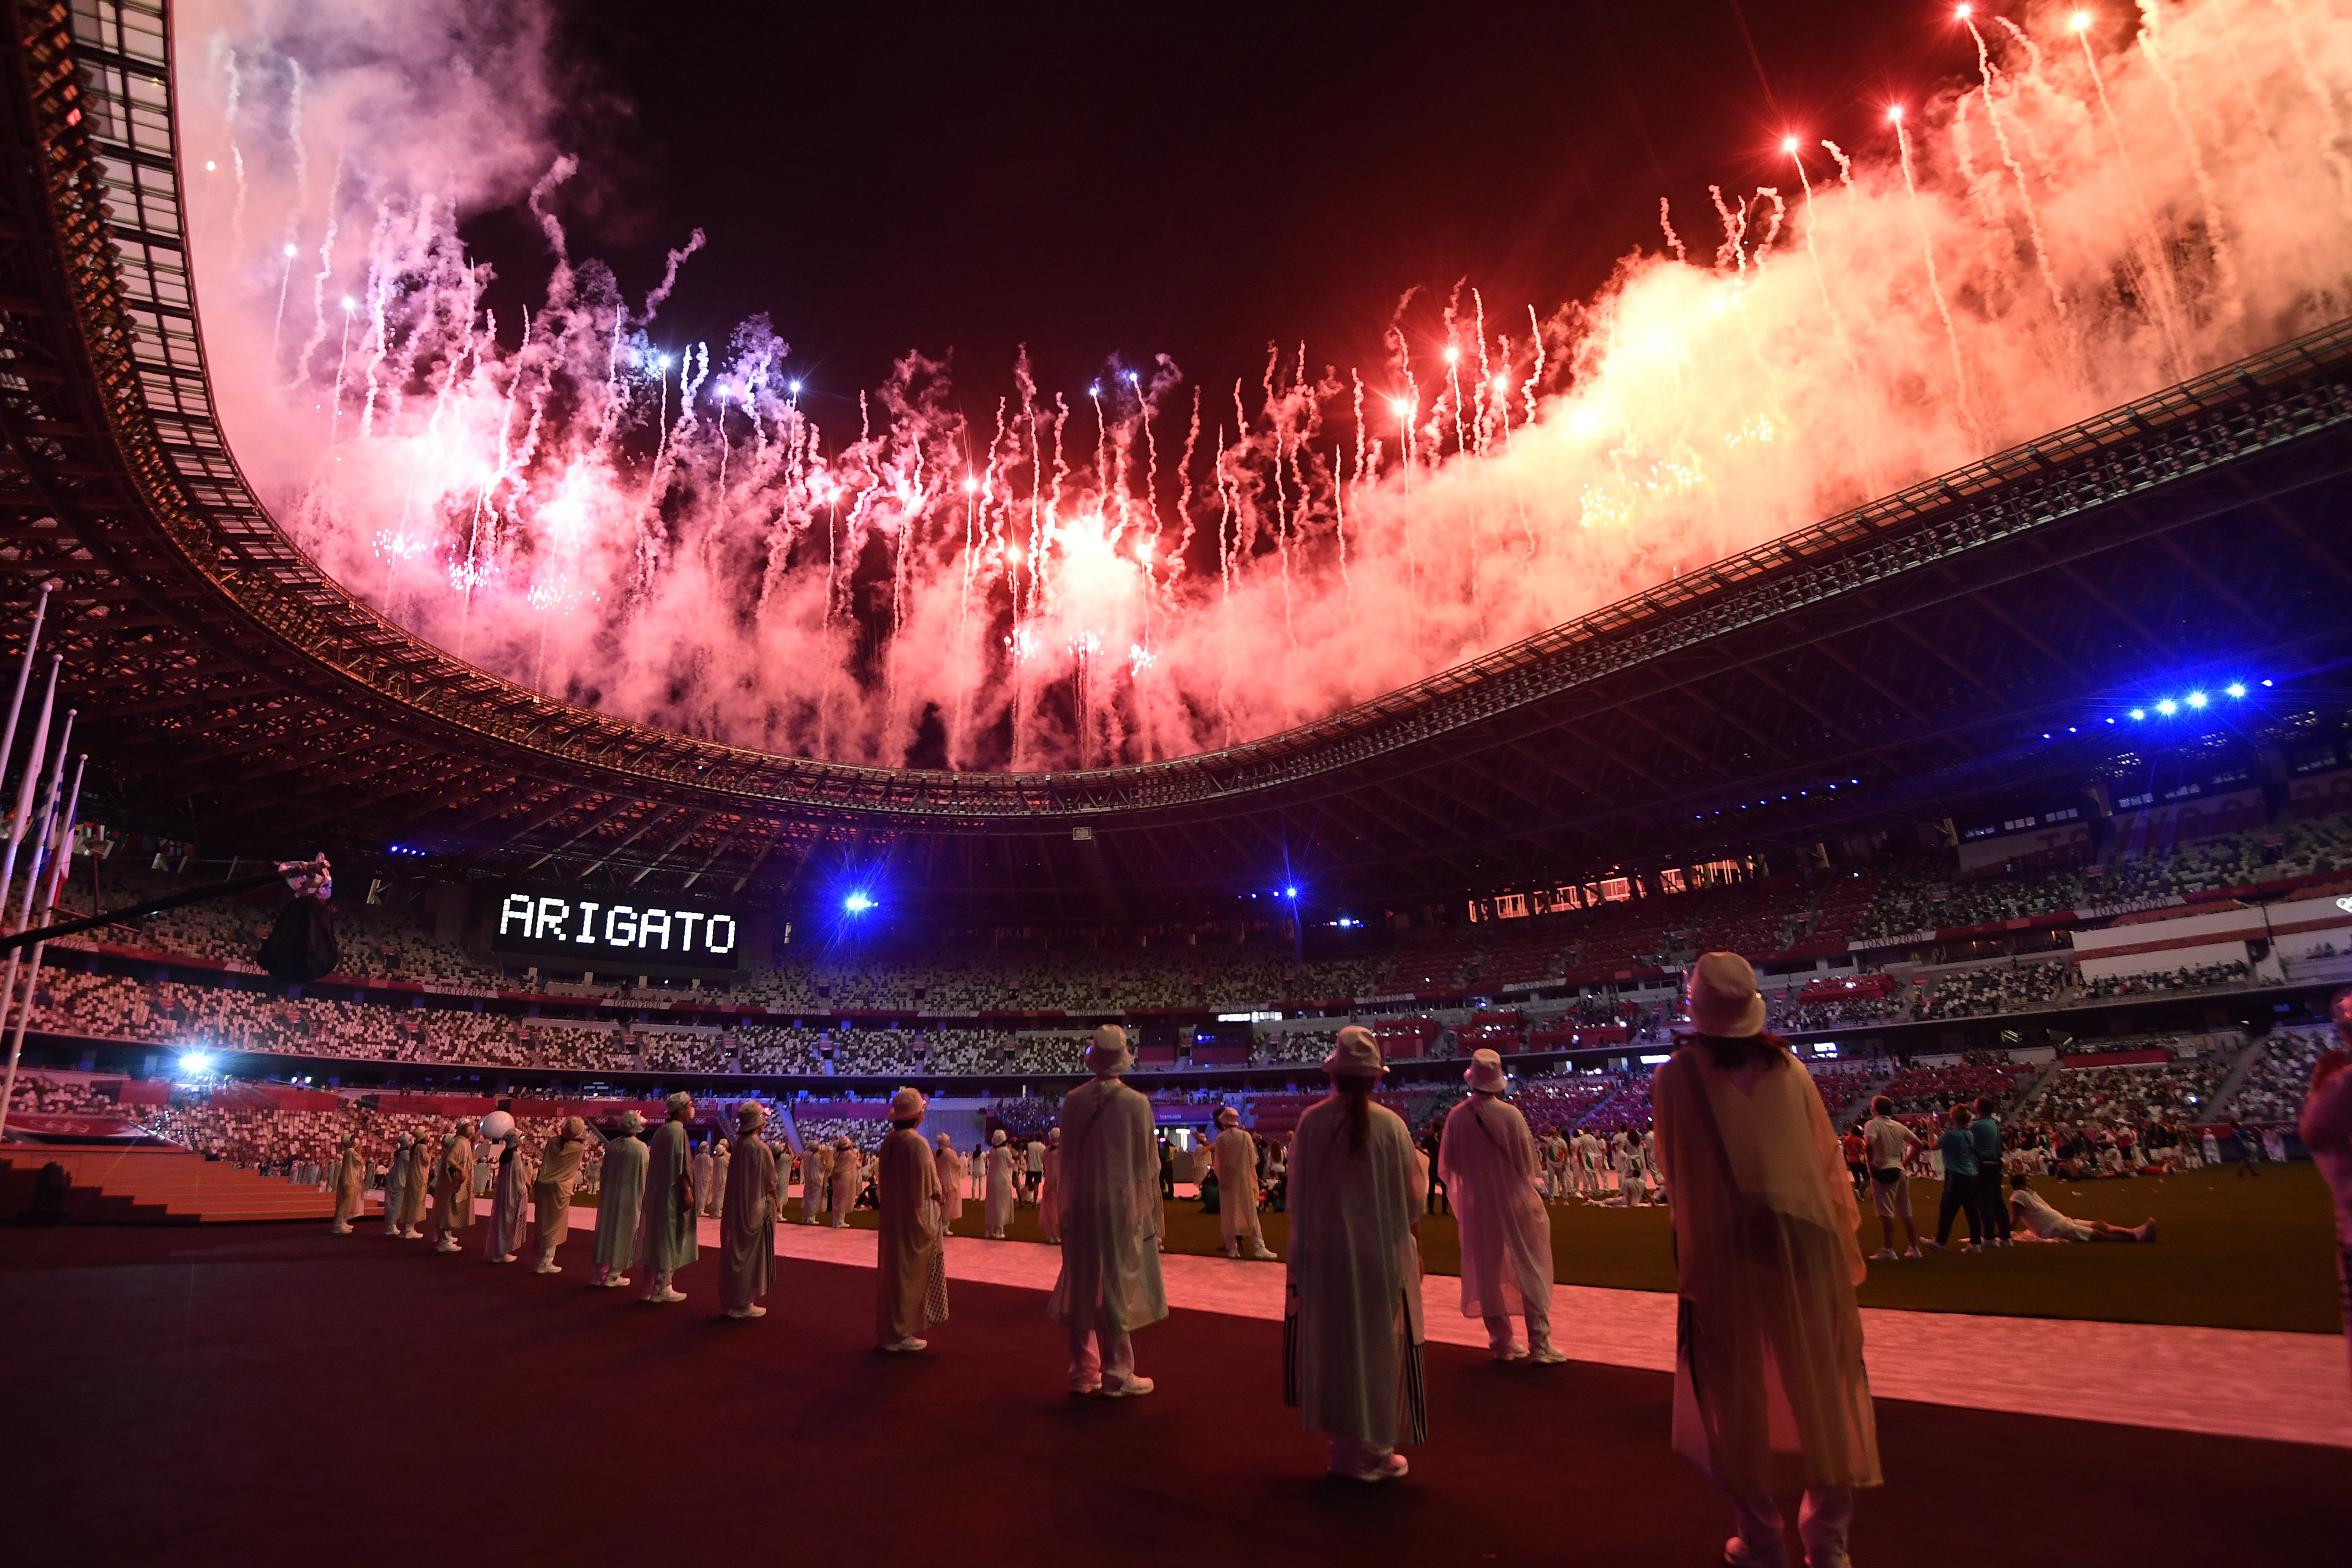 Tokyo passes Olympic baton to Paris after imperfect, irrepressible games